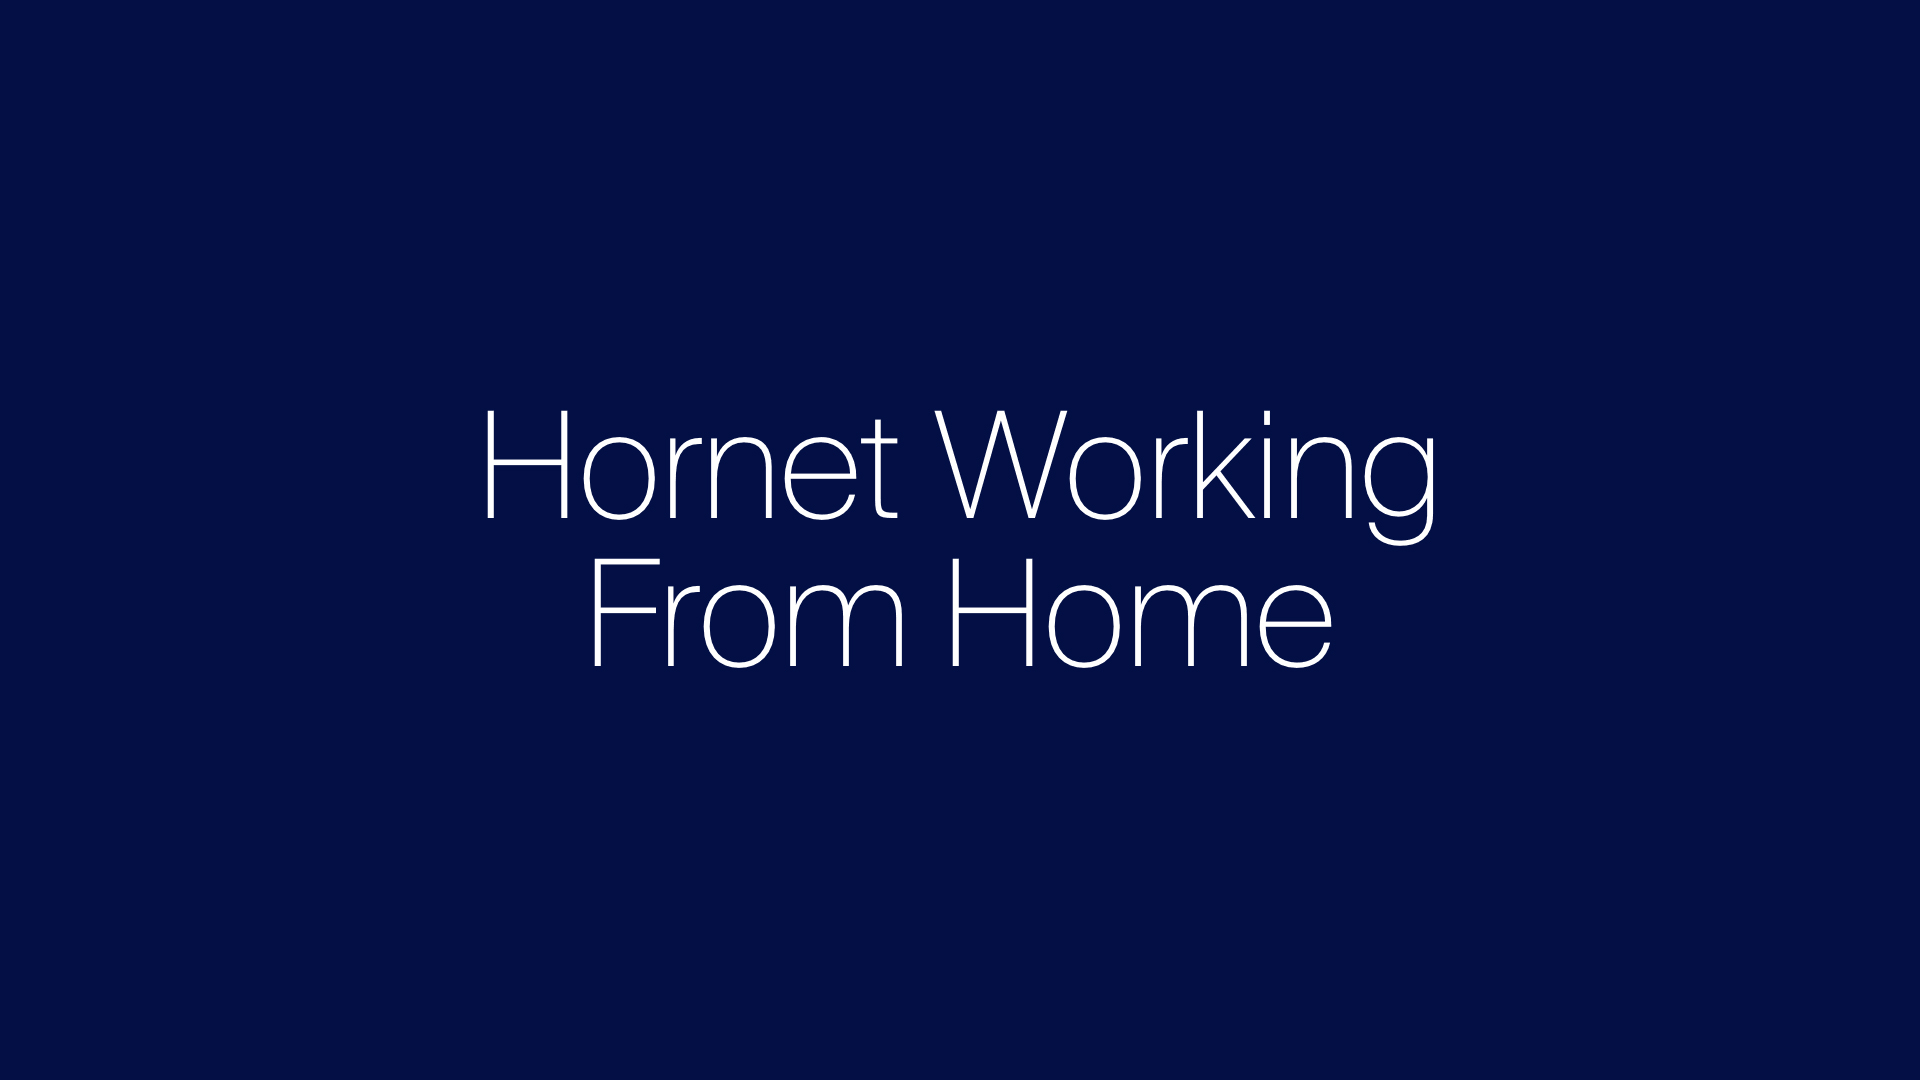 Update - Hornet working from home